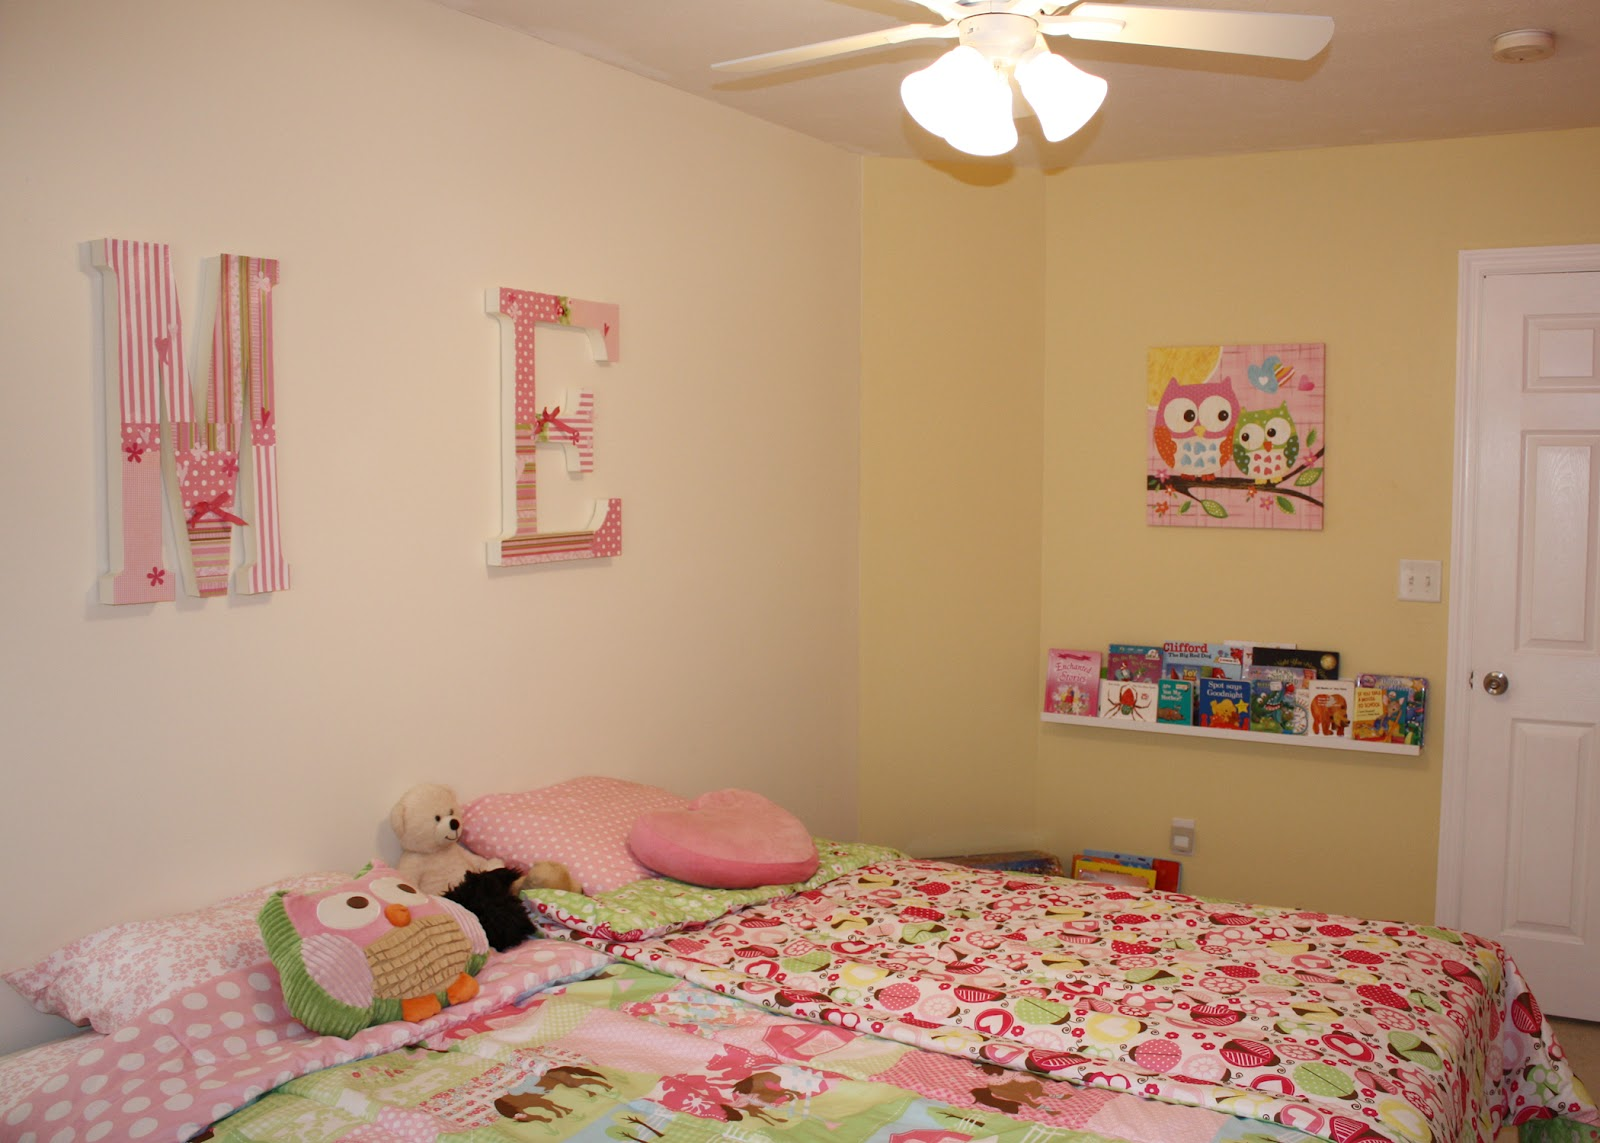 Admirable Lil Things I Love Twin Girls Bedroom Mix And Match Download Free Architecture Designs Grimeyleaguecom